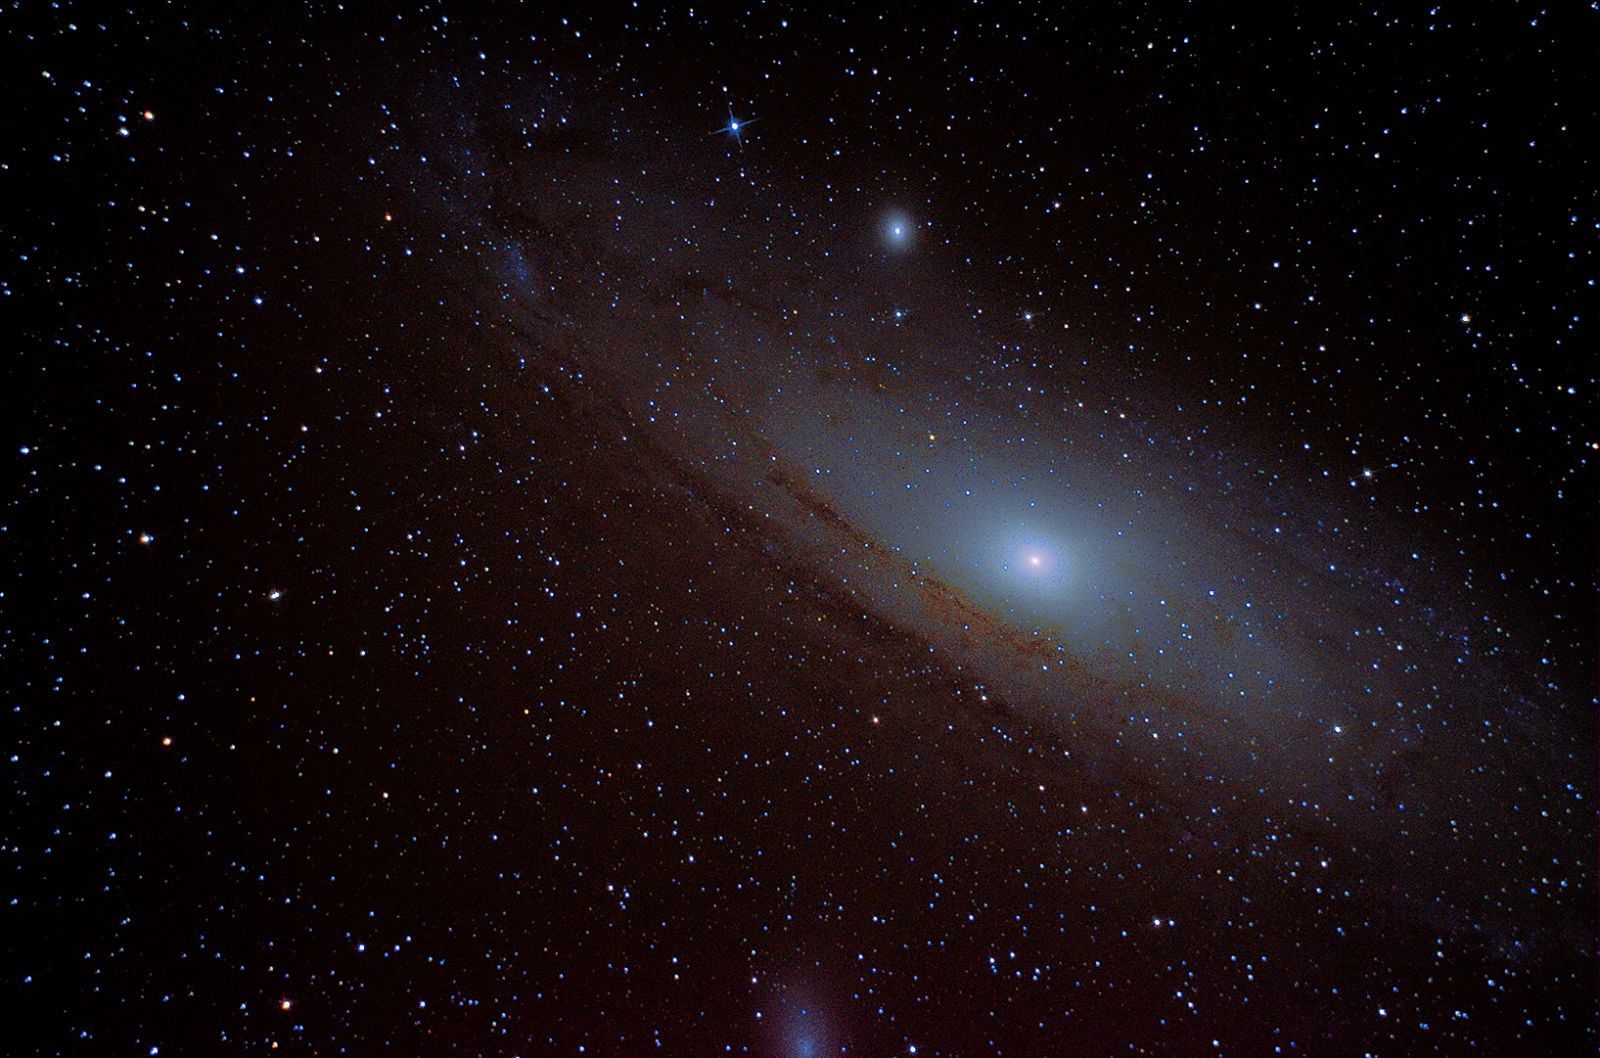 Reprocessed first DSO M31